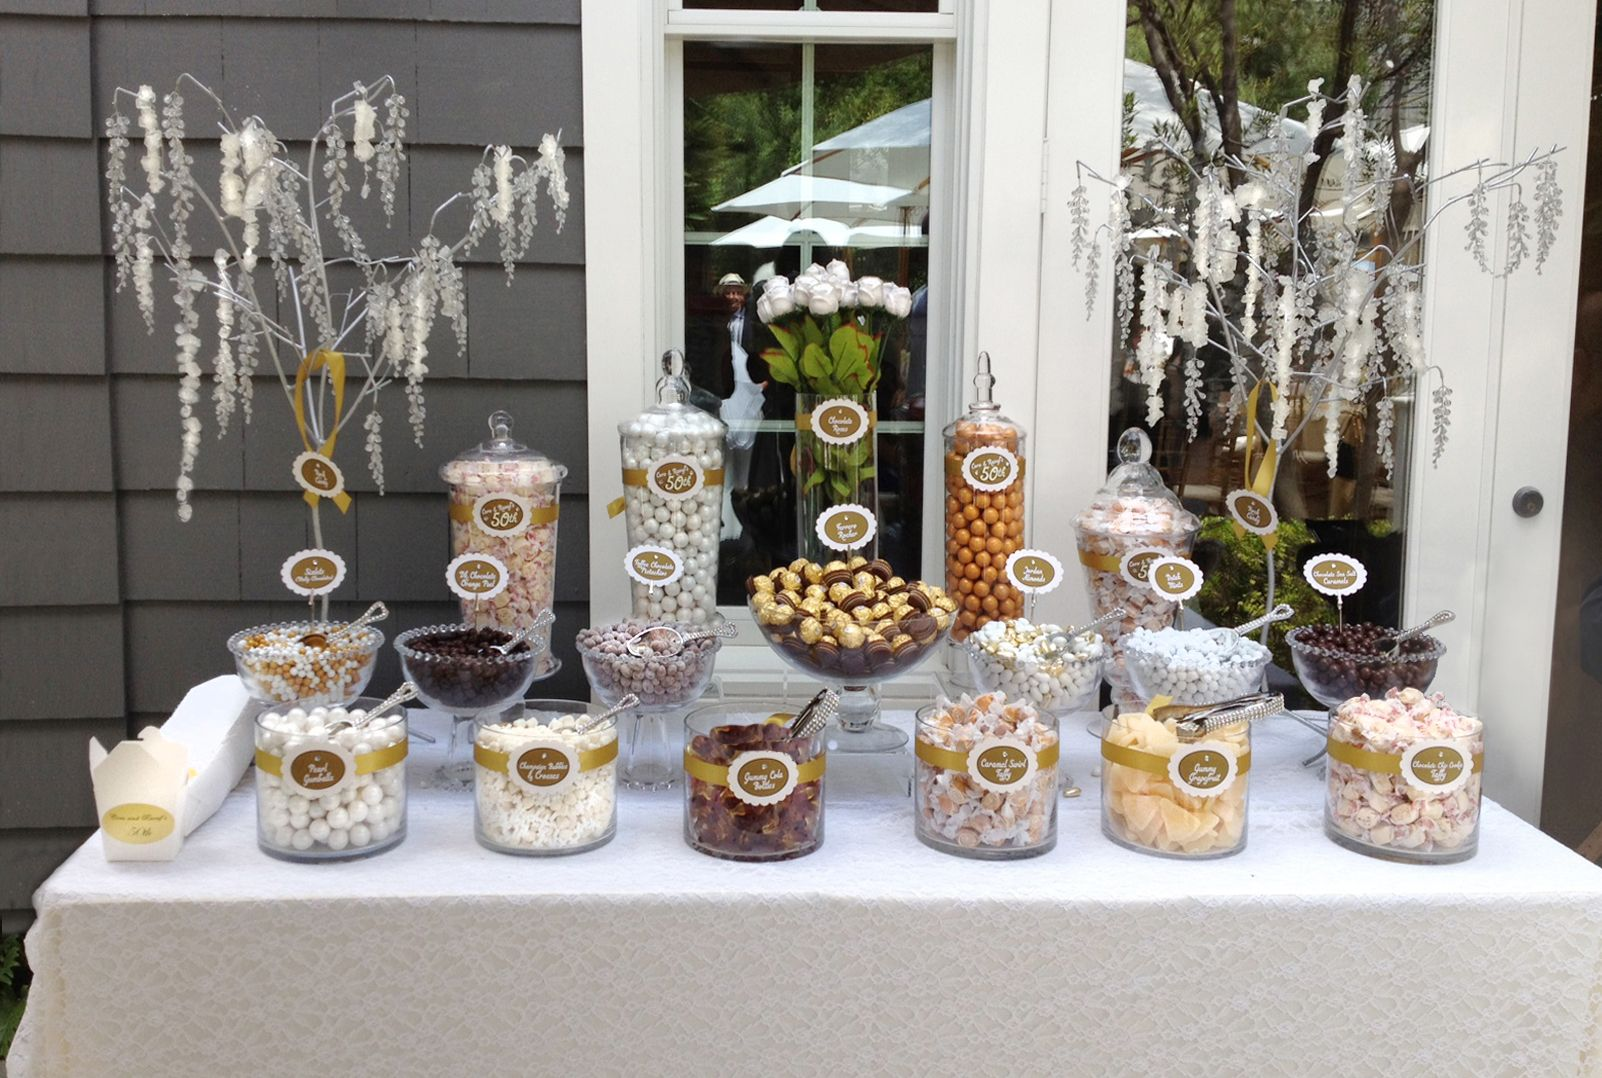 A Neutral Candy Buffet I made for a fun but upscale 50th Wedding